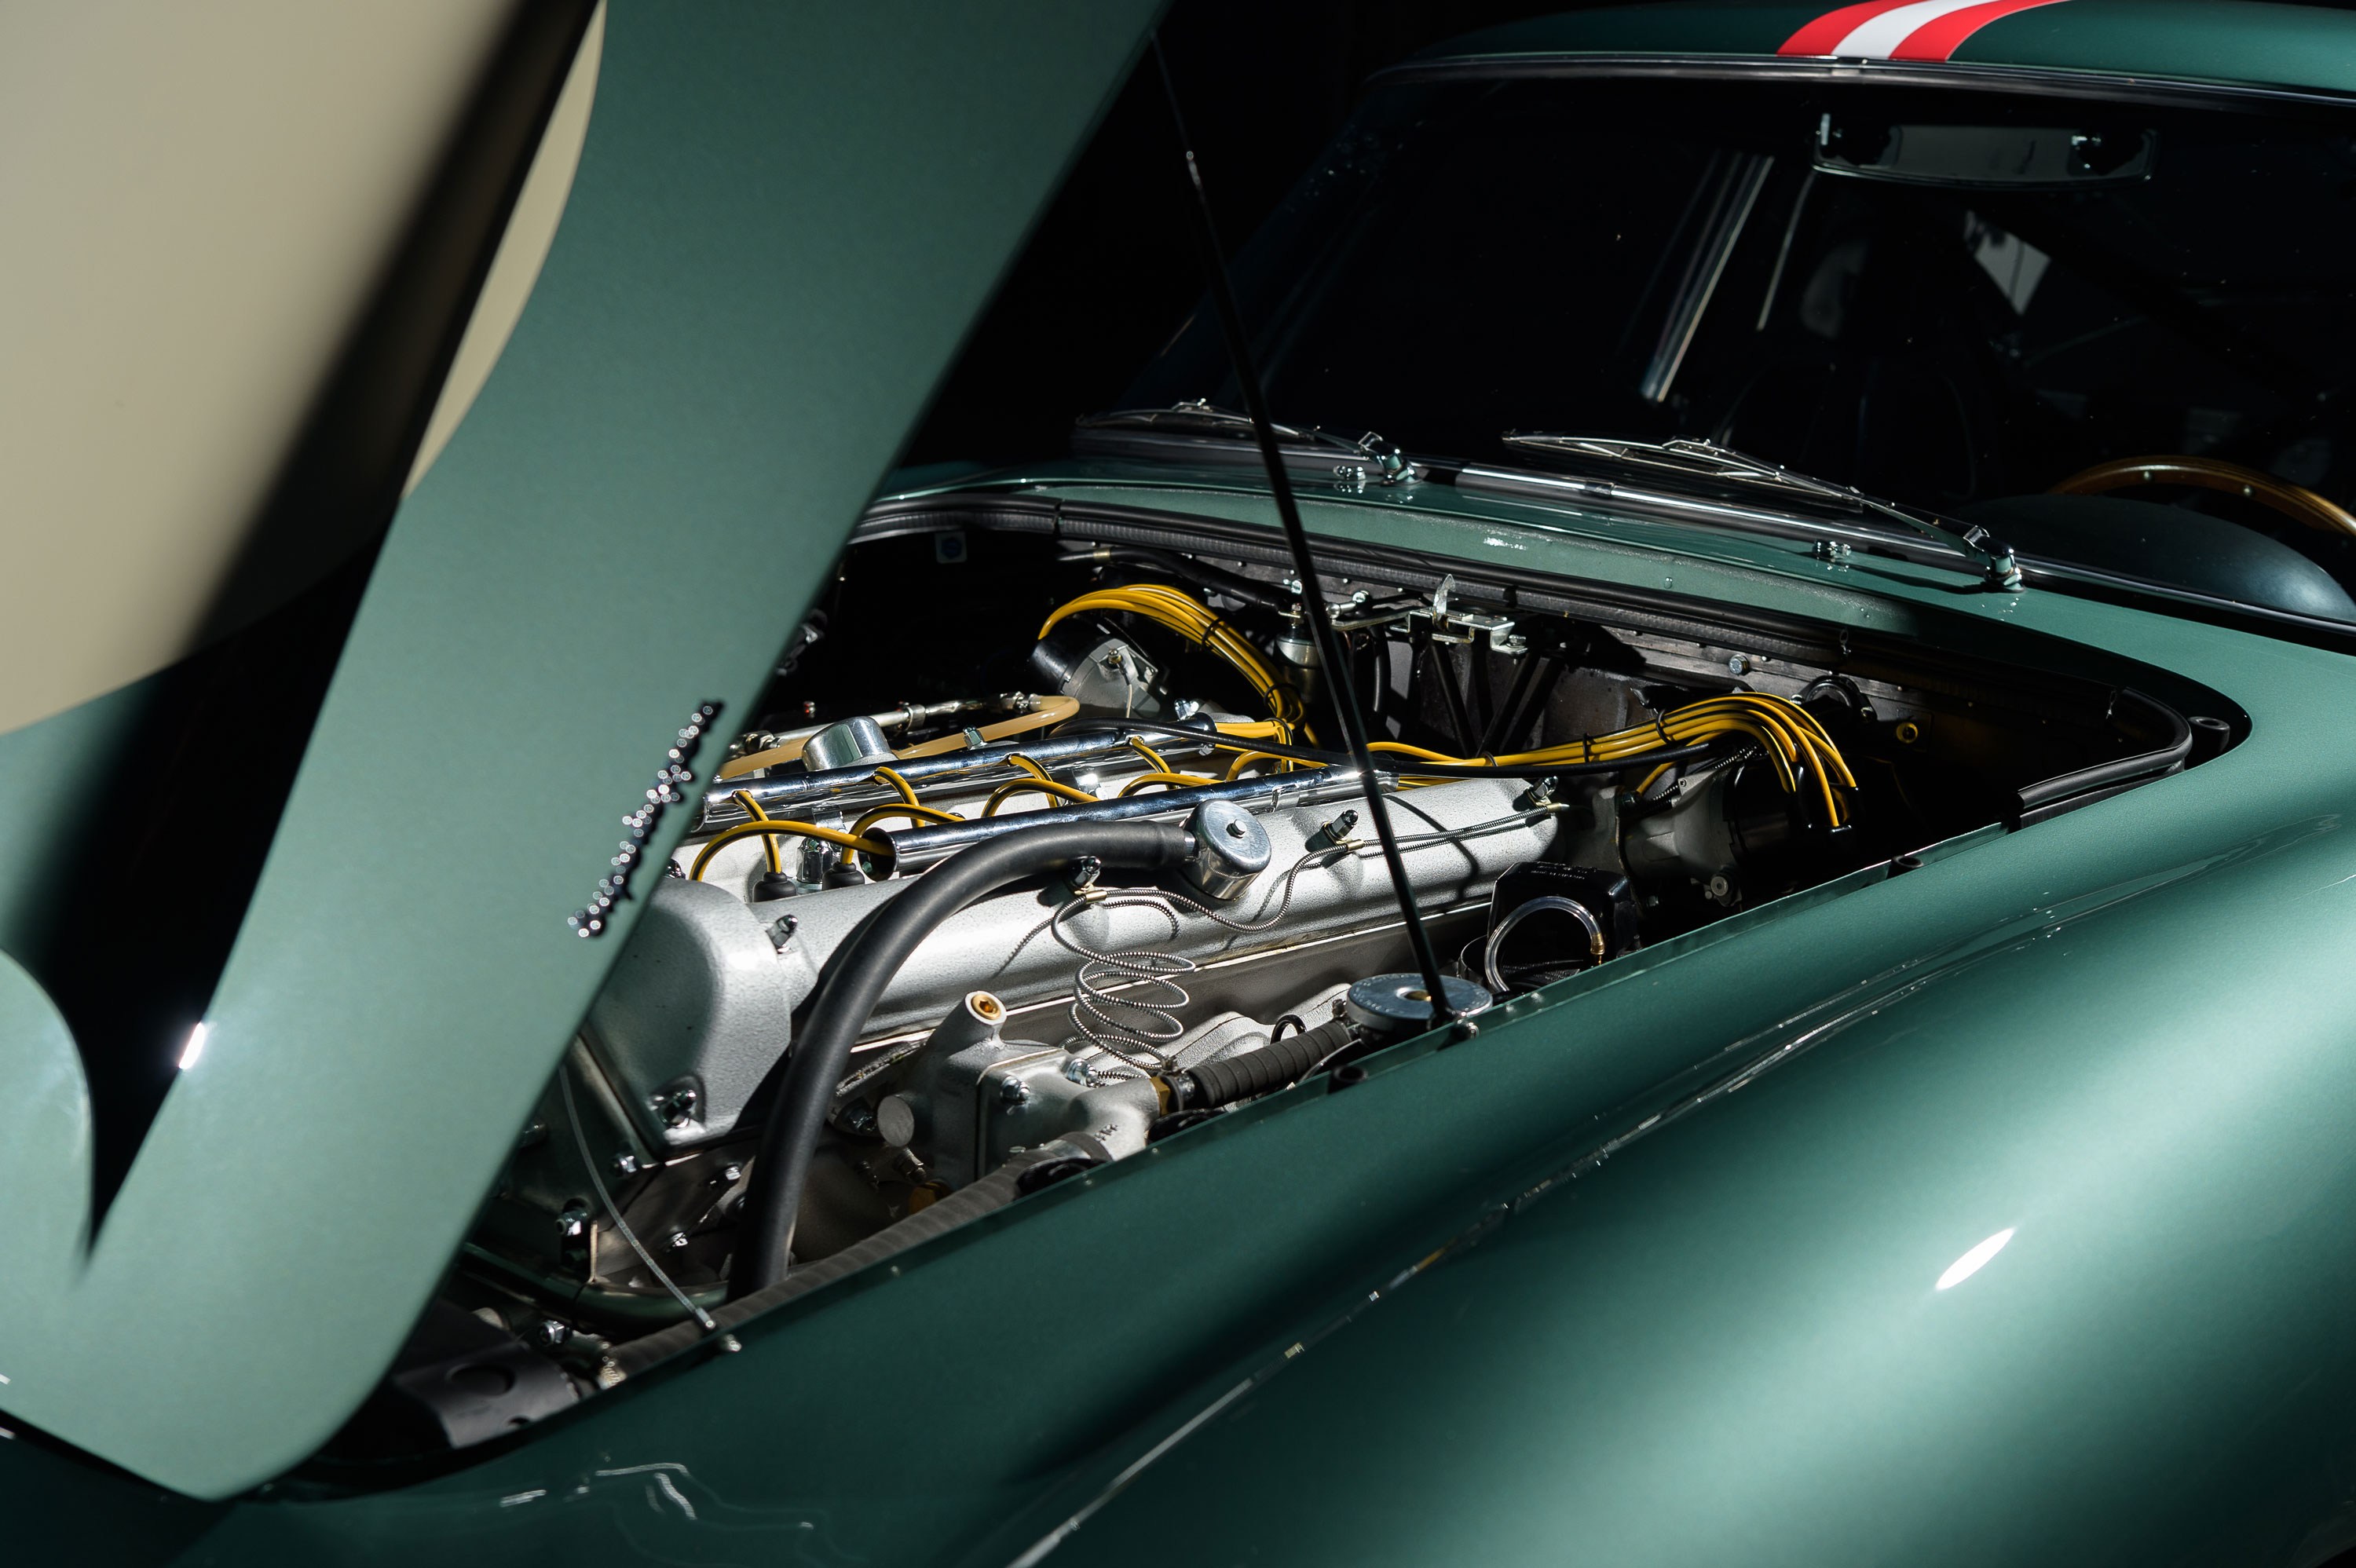 1959 Aston Martin DB4 GT hood up engine